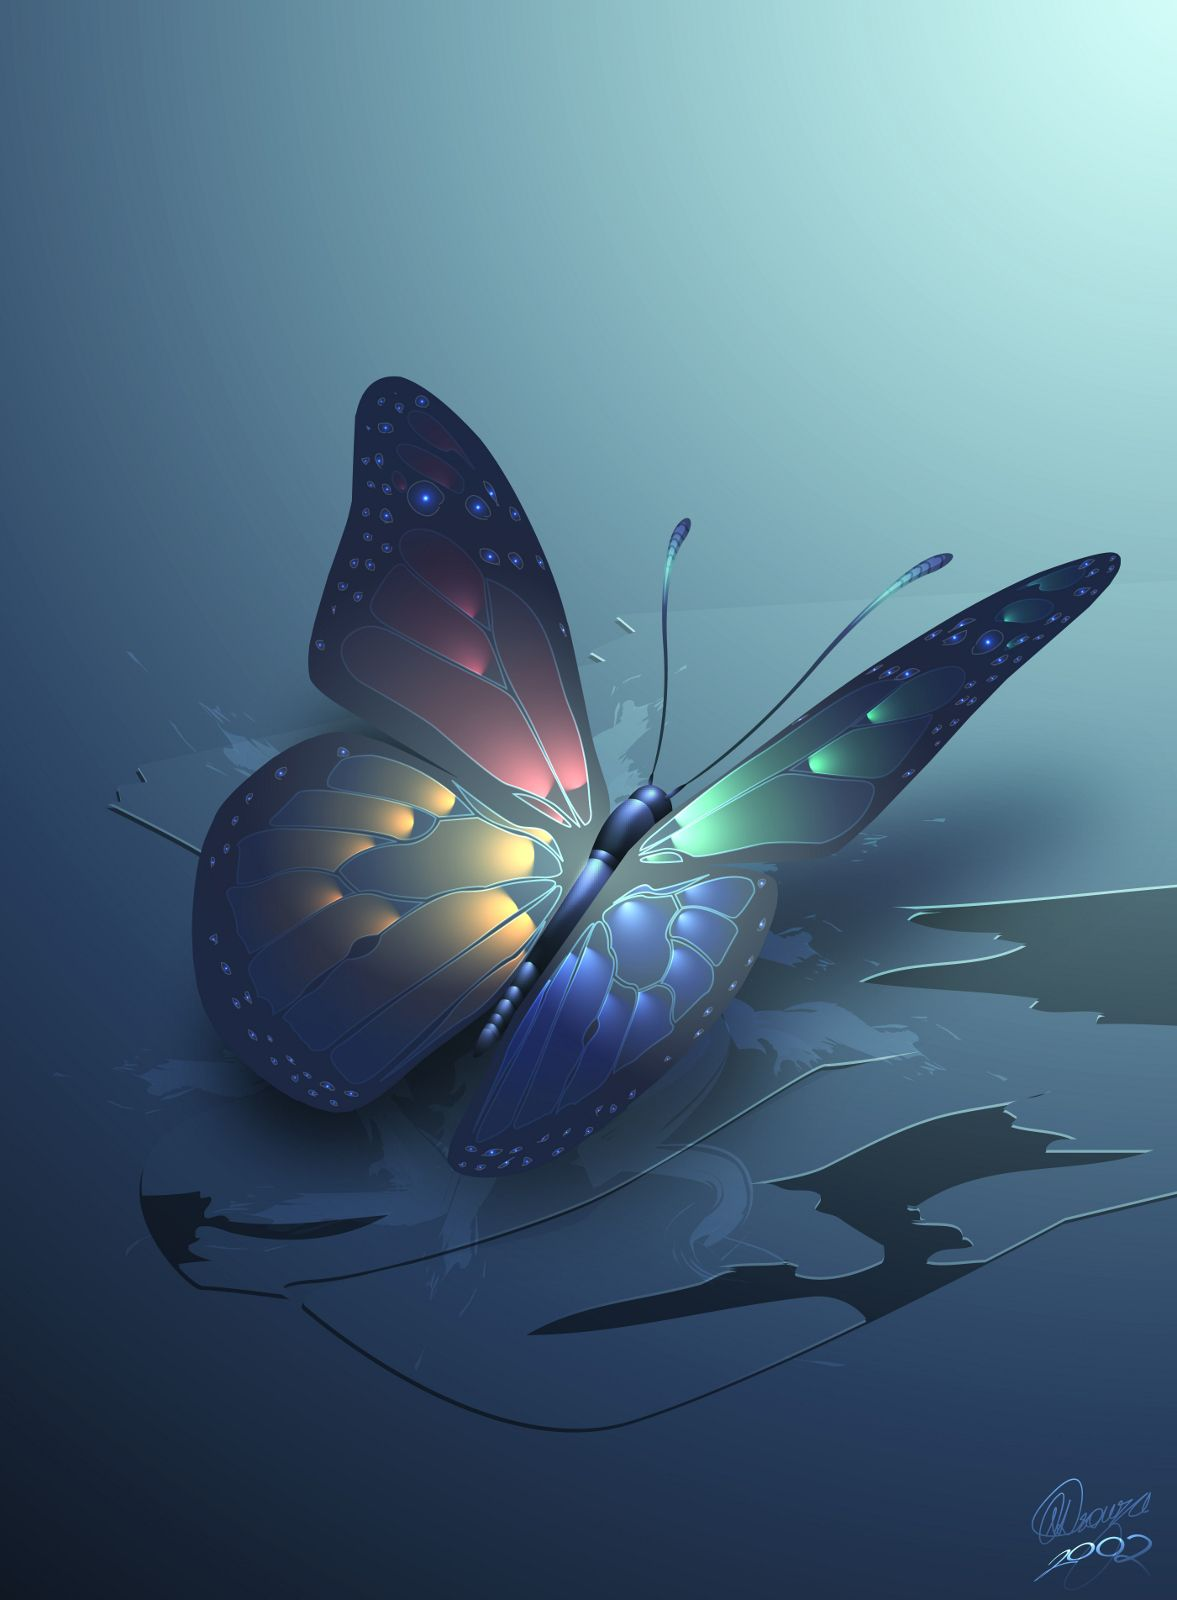 ♥♥ winterbliss butterfly by nevs28.deviantart.com on @DeviantArt